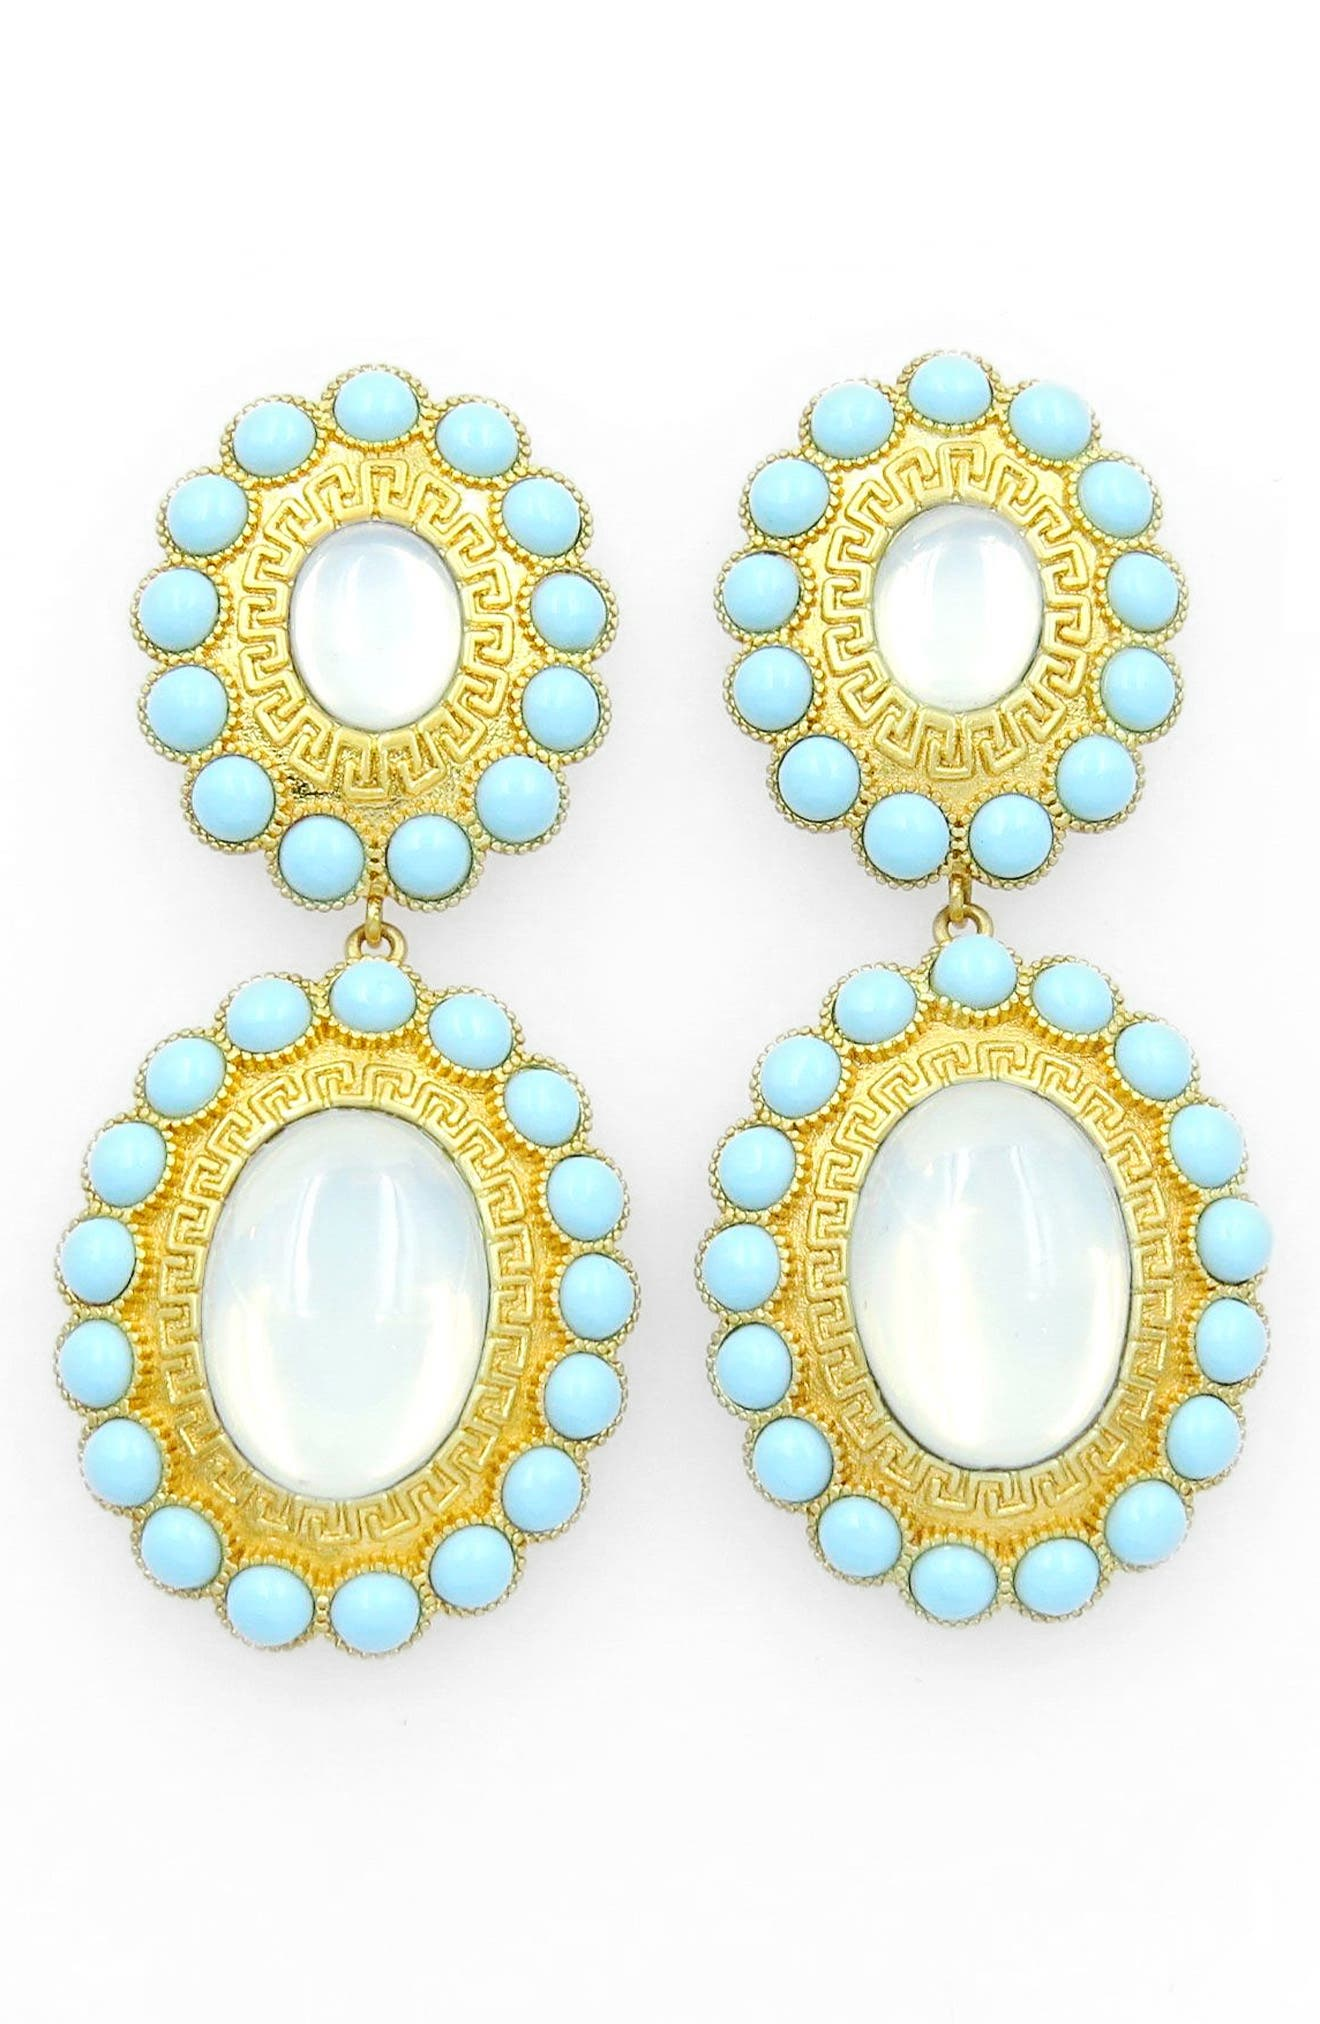 Main Image - Asa Kaftans Drop Earrings